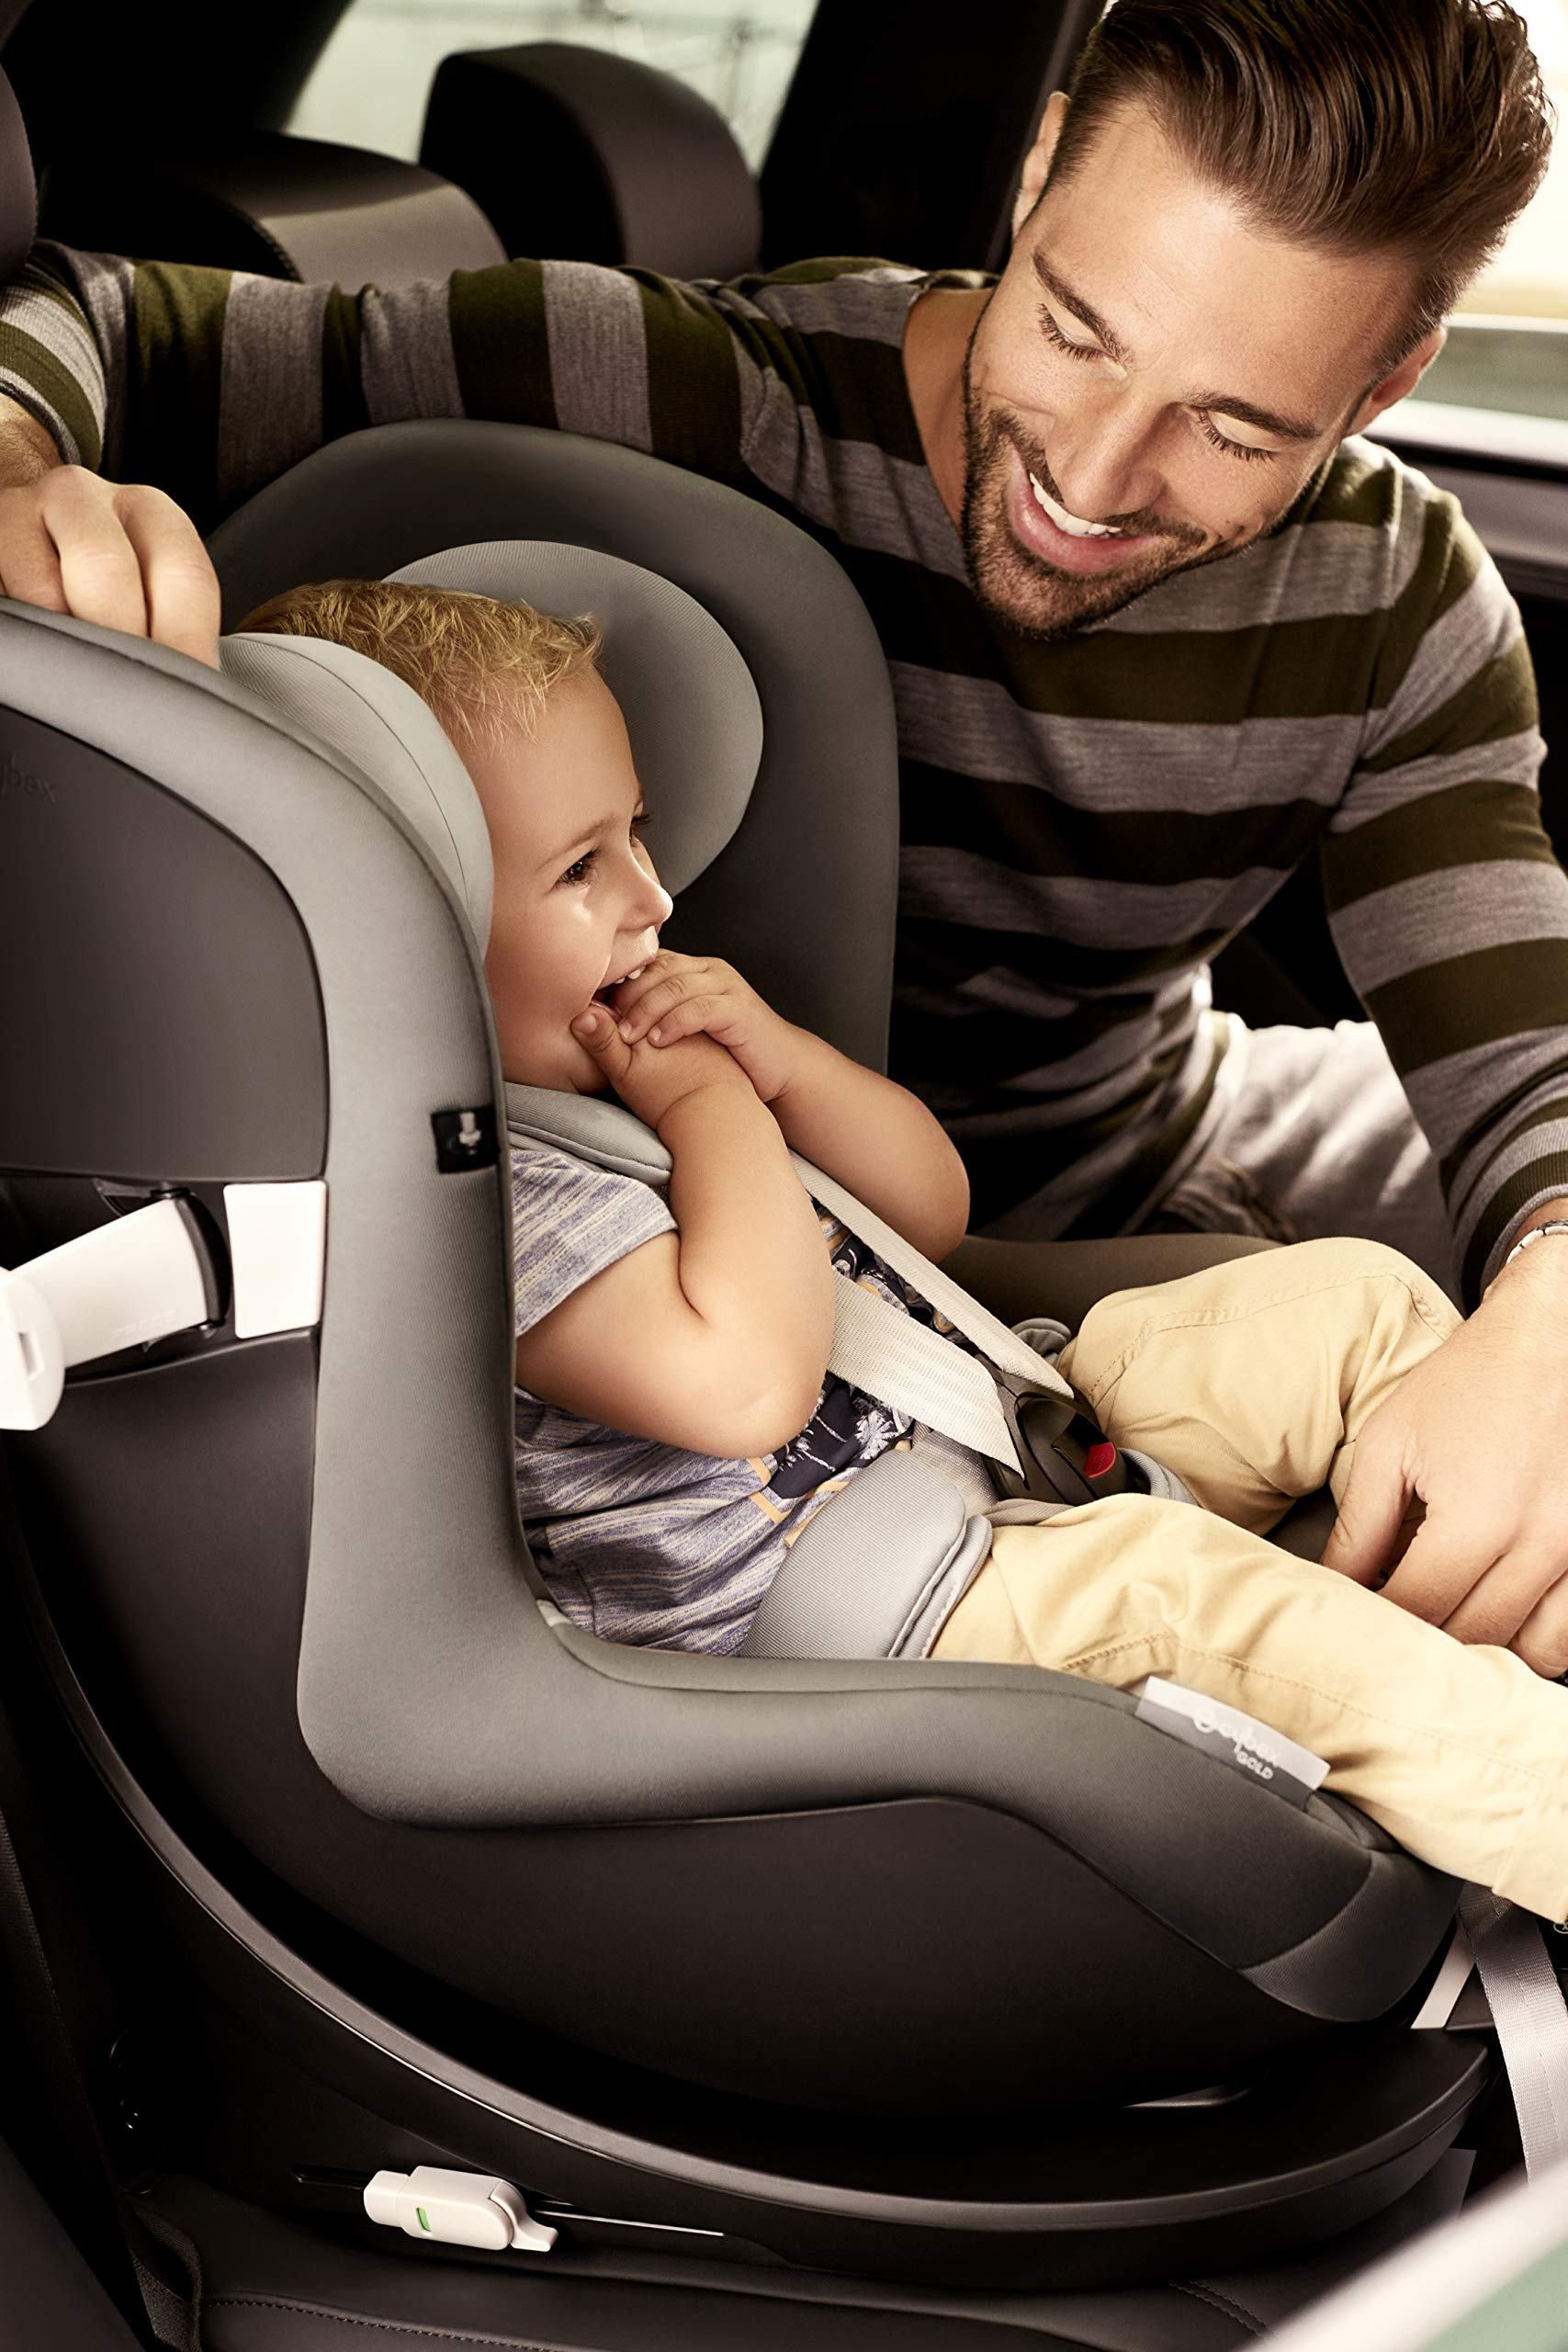 CYBEX Gold Sirona M2 i-Size Car Seat, Incl. Base M, From Birth to approx. 4 years, Up to Max. 105 cm Height, Urban Black  Cybex gold car seat sirona m2 i-size incl. base m Colour: urban black Item number: 519000957 8